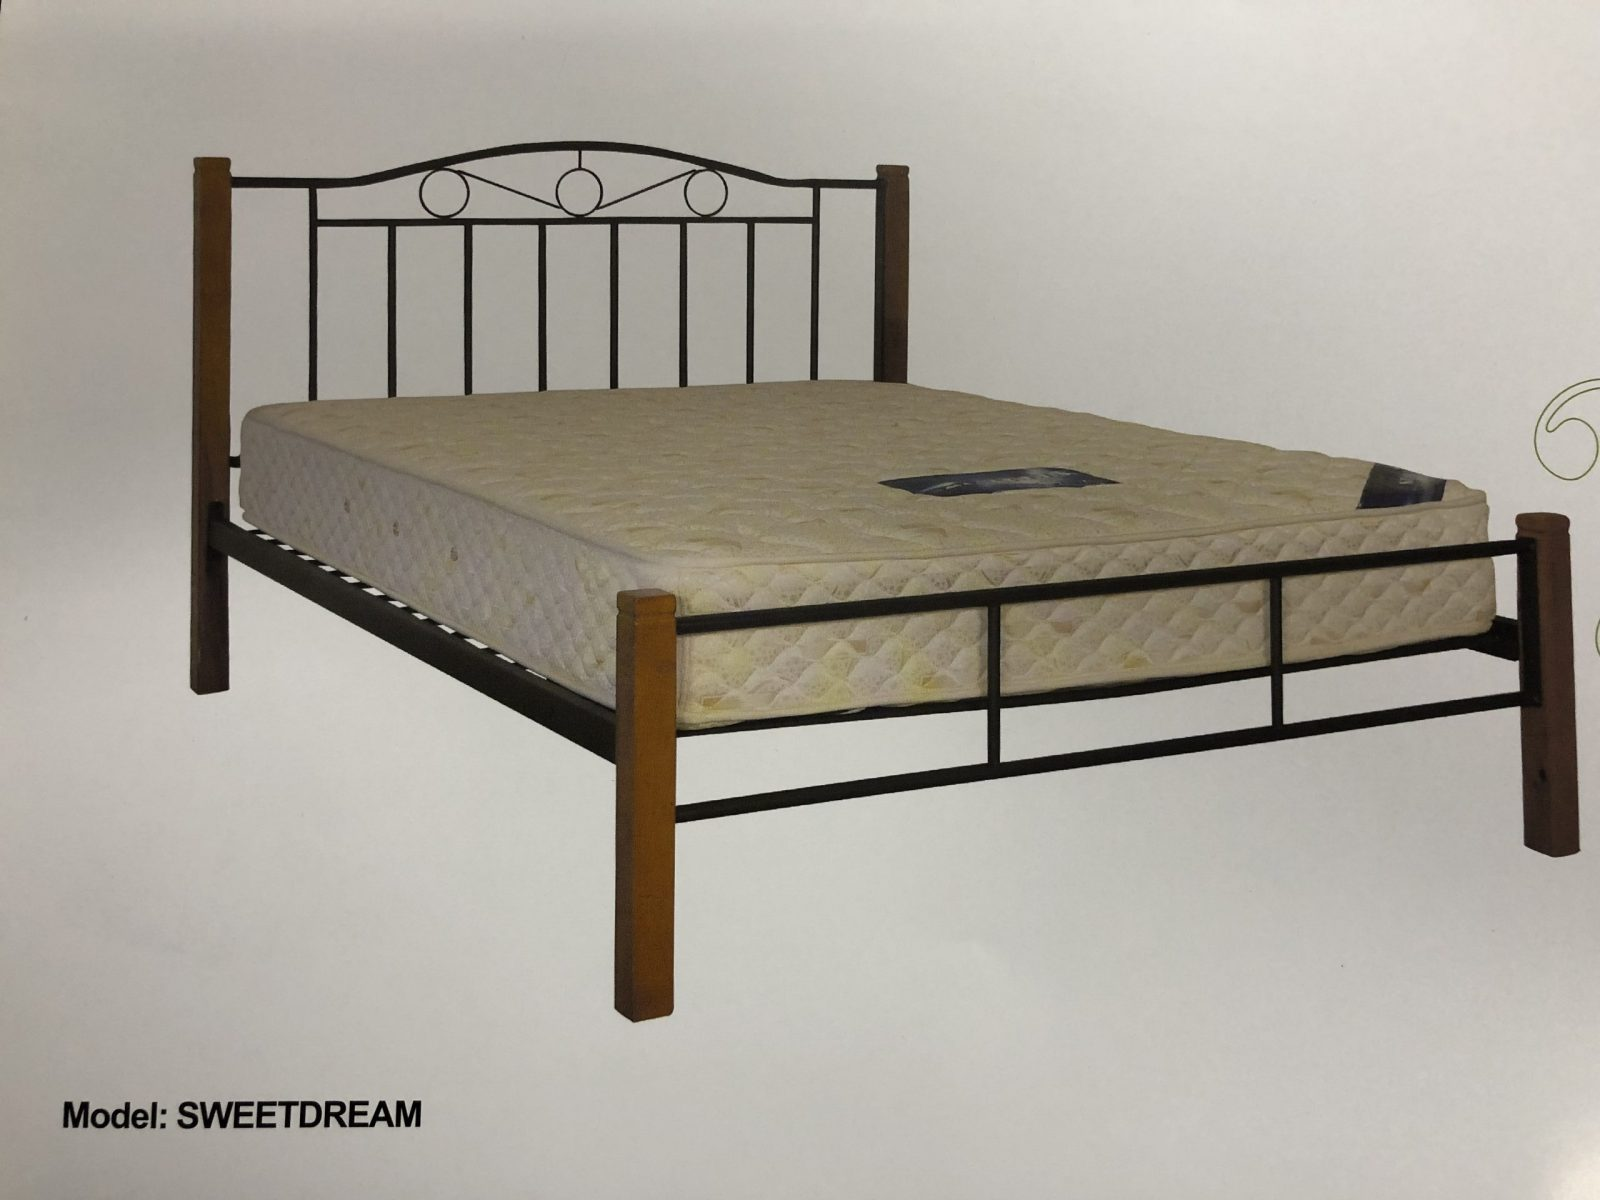 Sweetdream Bed Frame